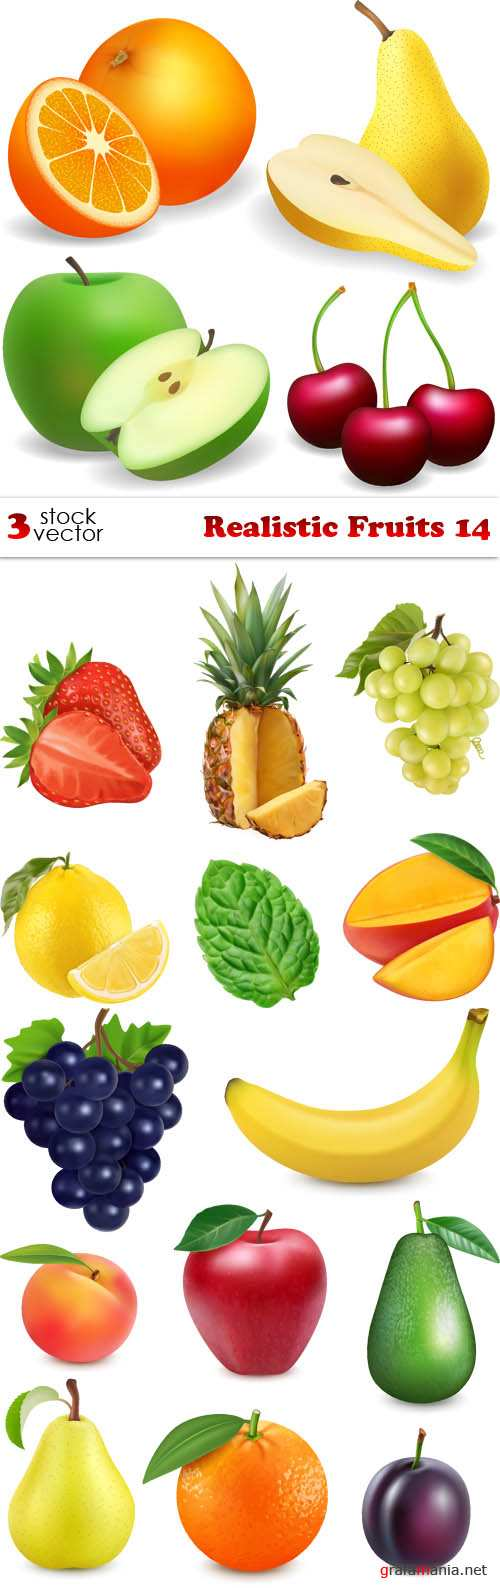 Vectors - Realistic Fruits 14